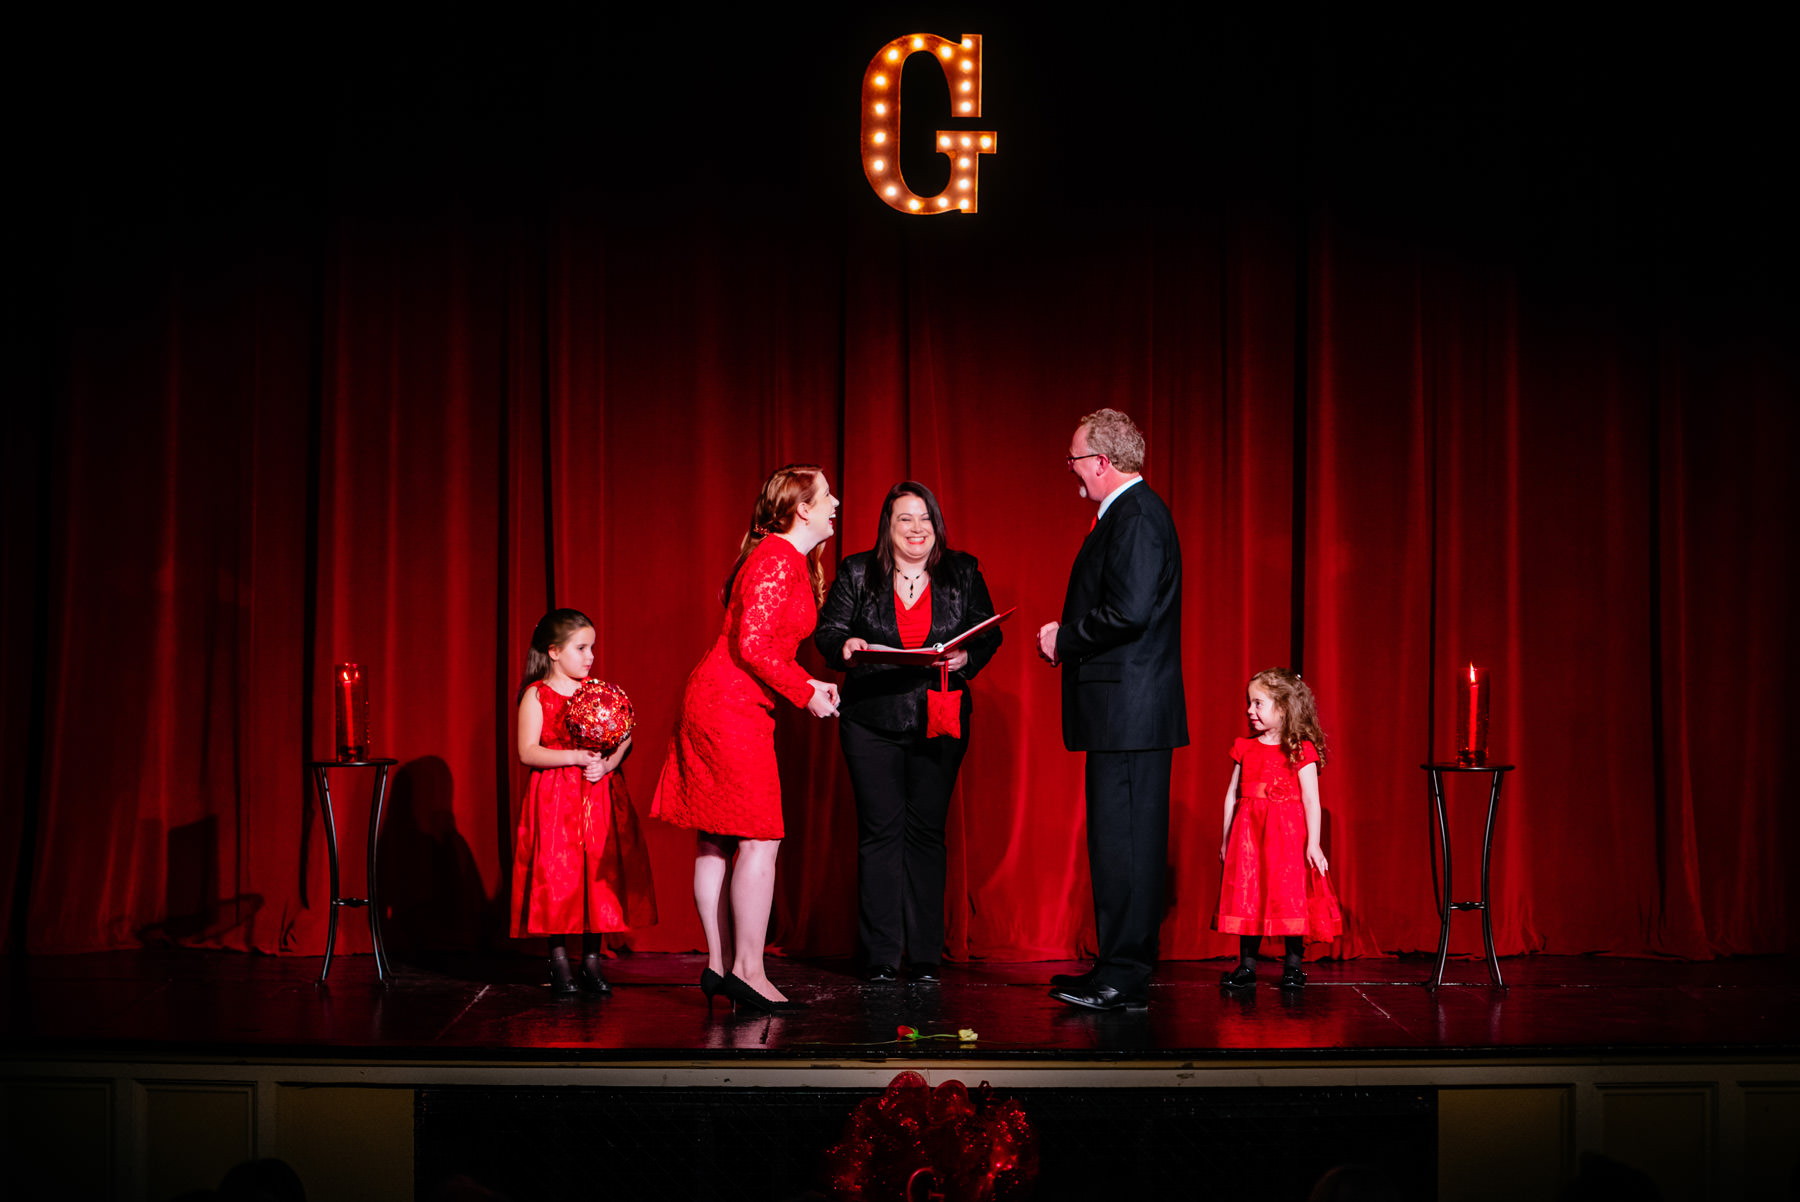 red theater curtain wedding ceremony